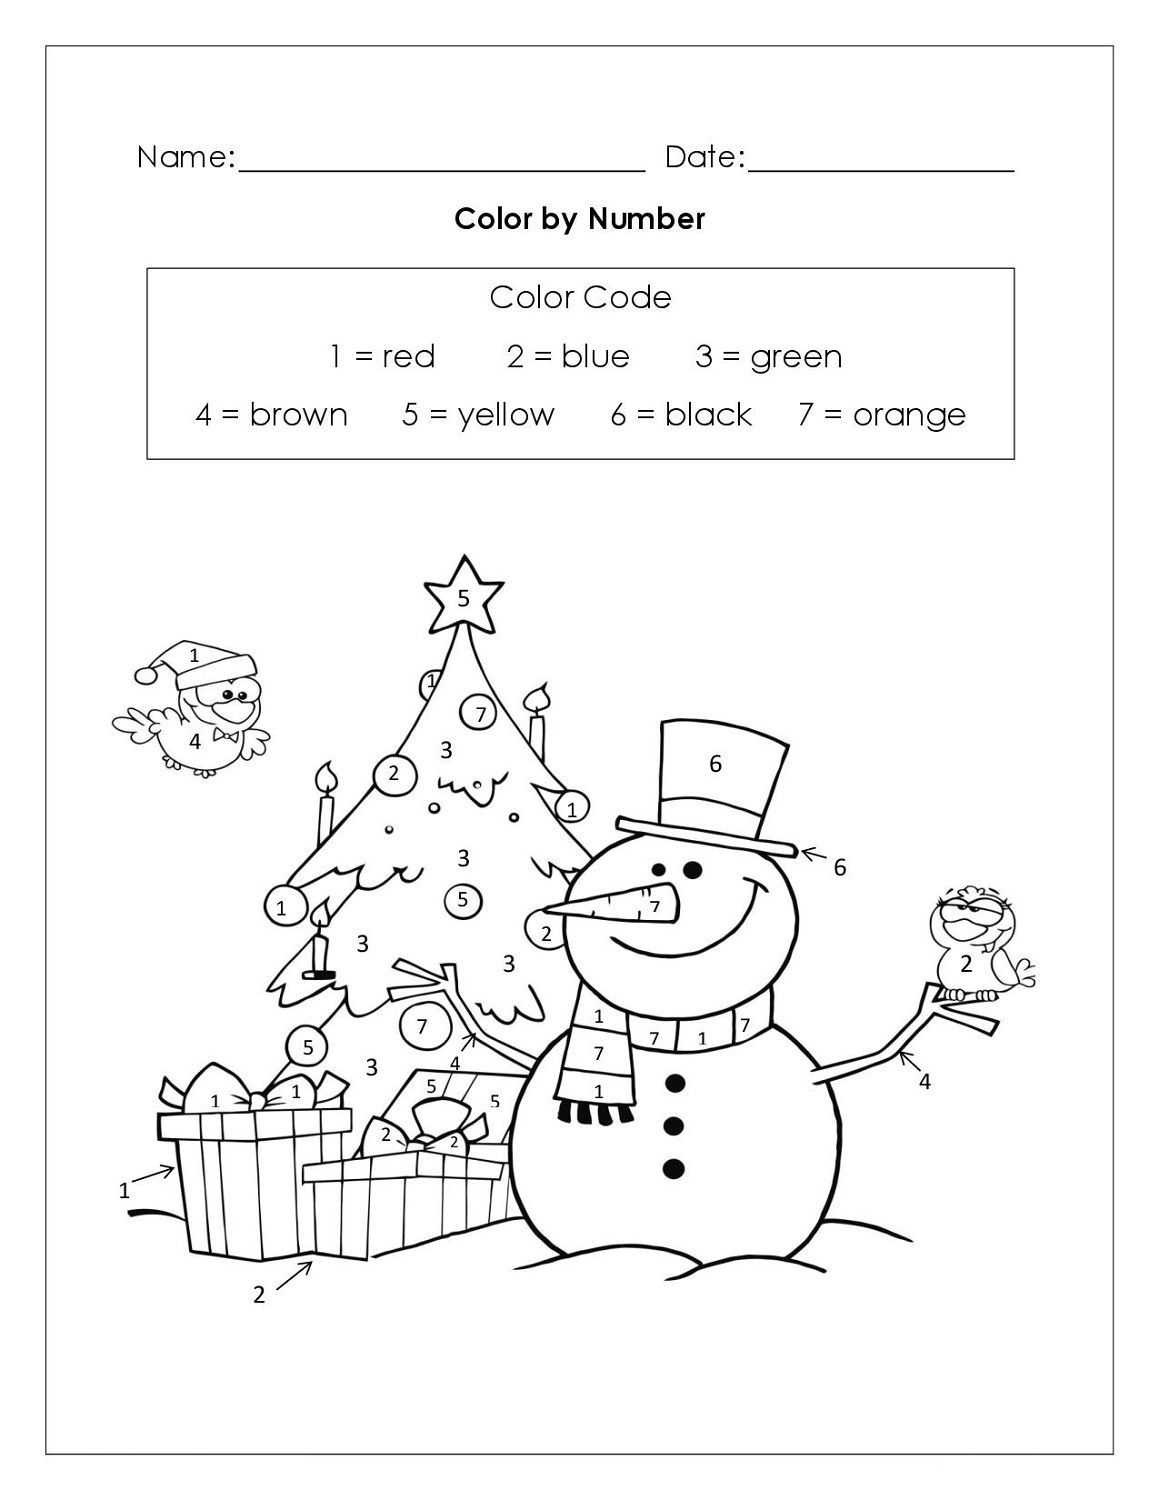 Color By Number Worksheet Free